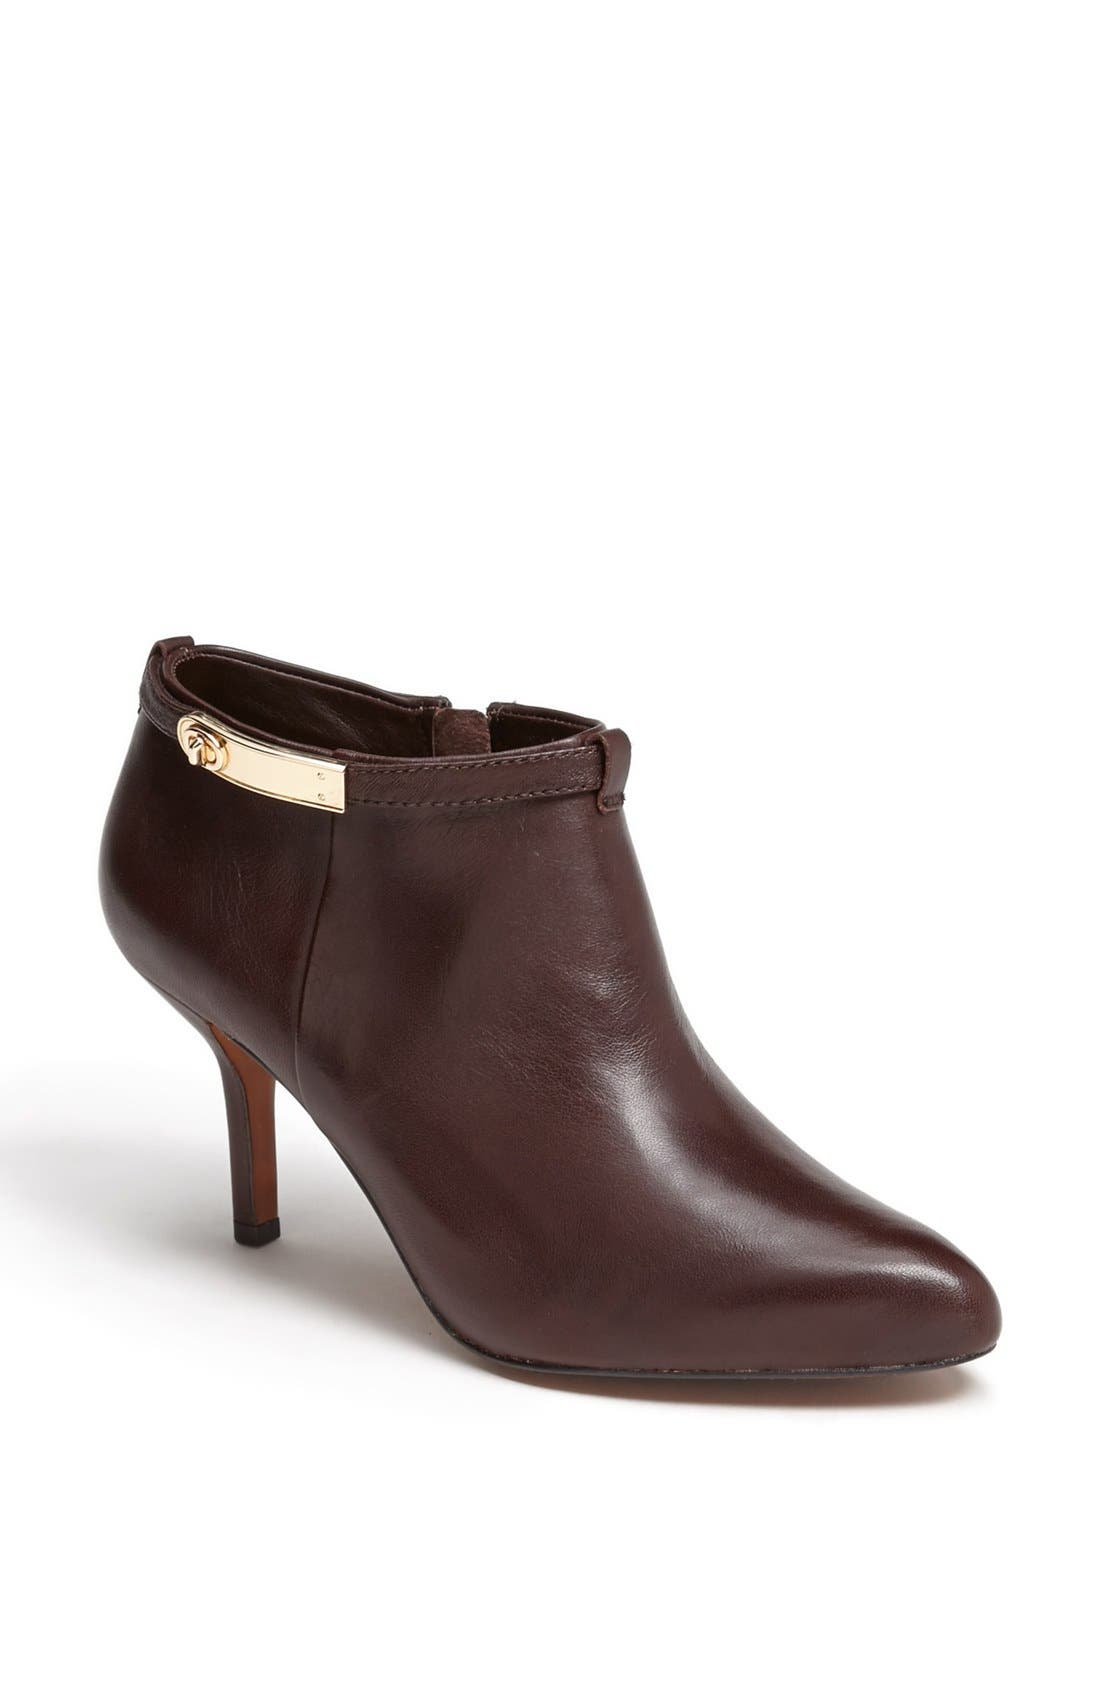 Alternate Image 1 Selected - COACH 'Yalena' Bootie